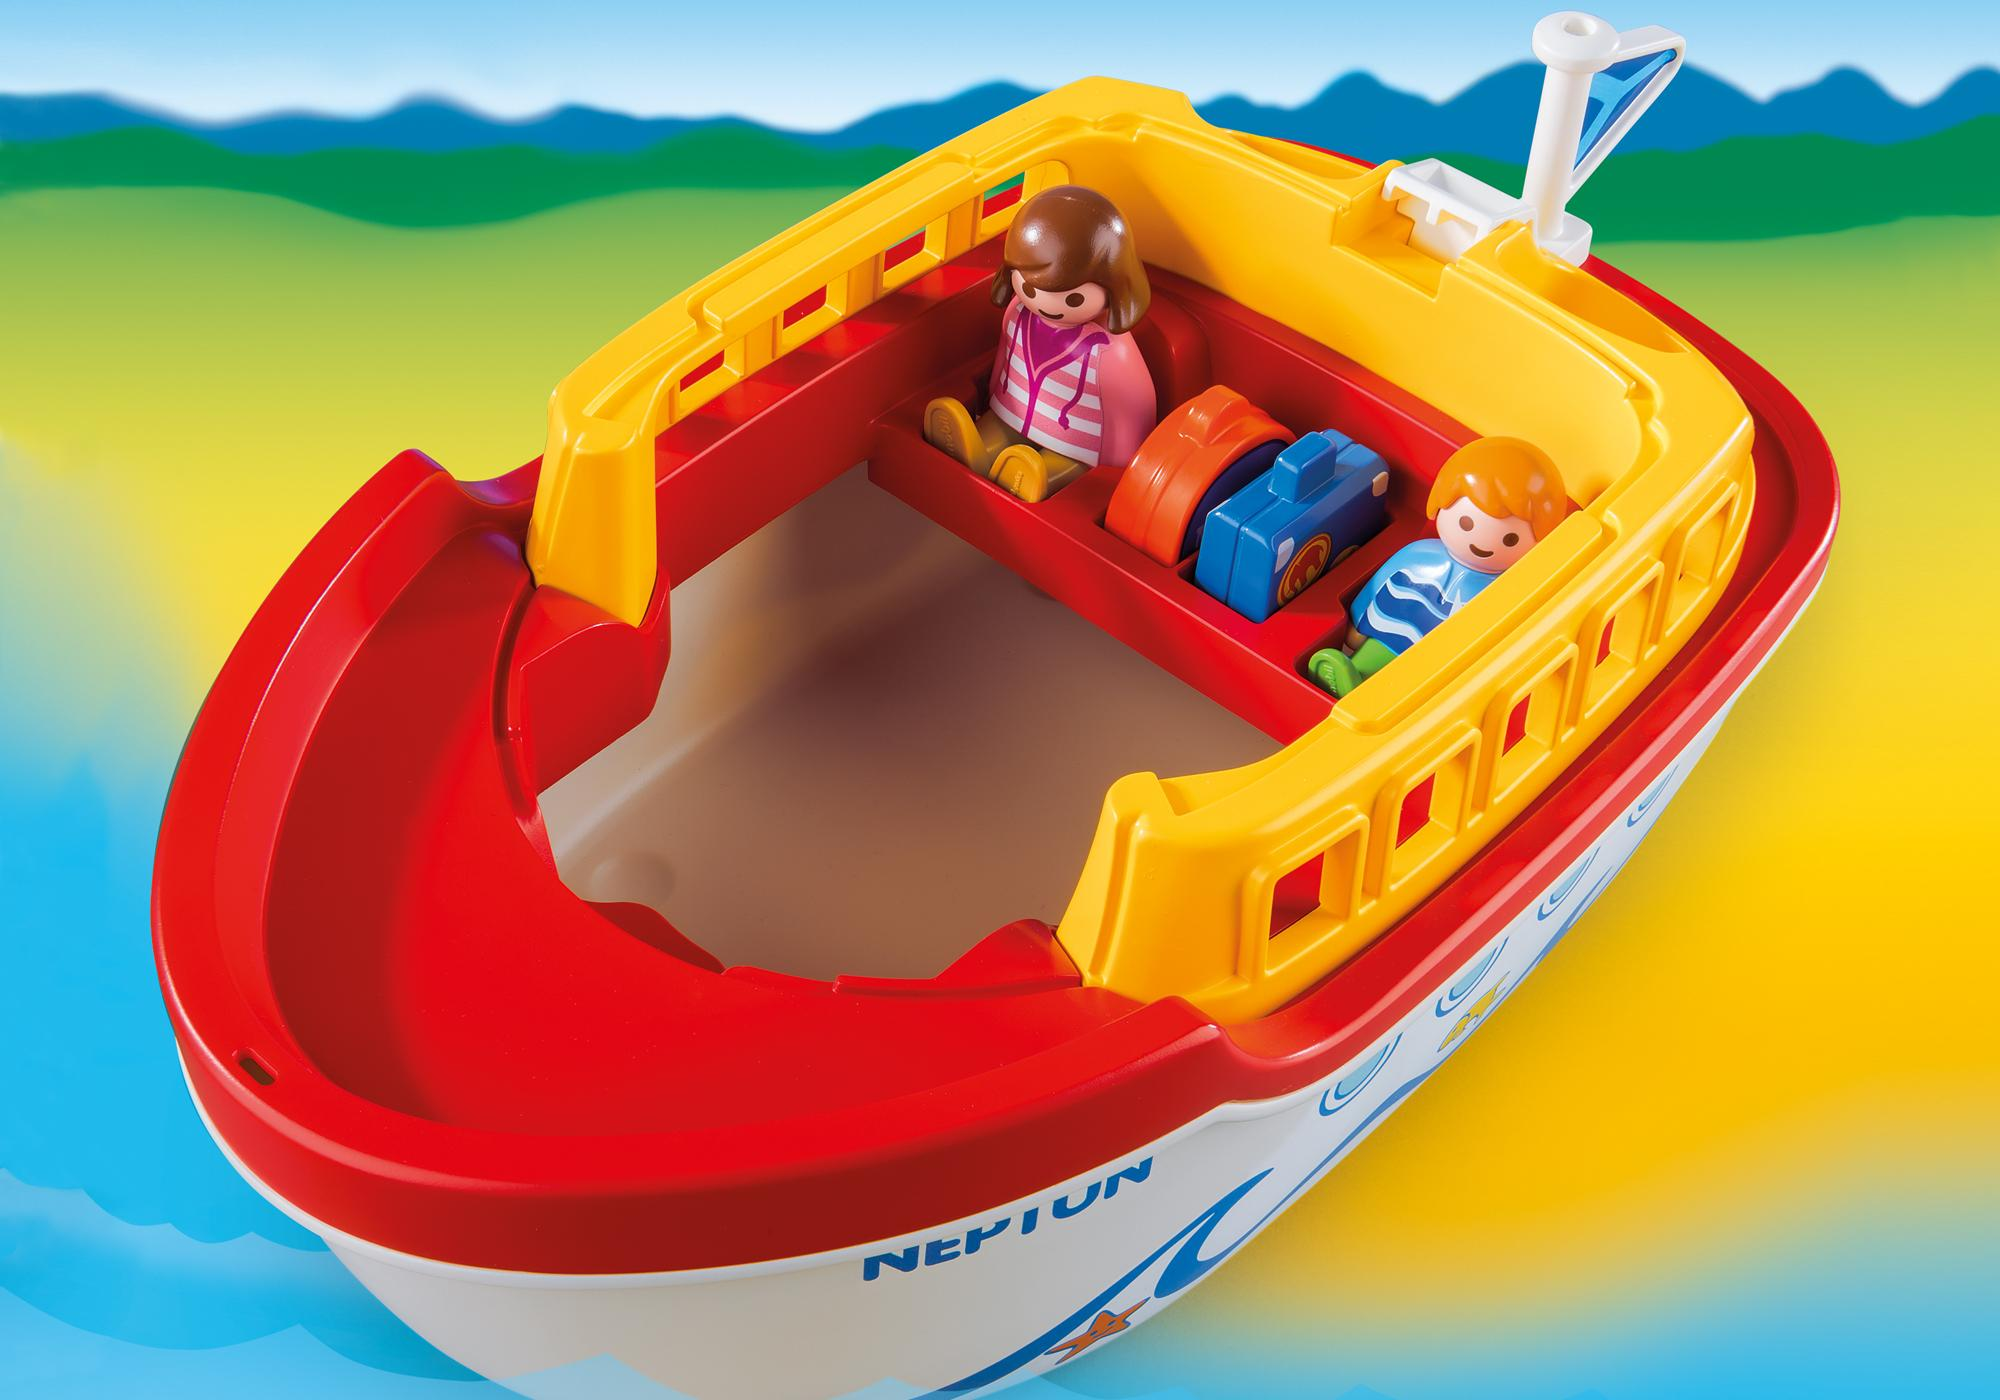 http://media.playmobil.com/i/playmobil/6957_product_extra2